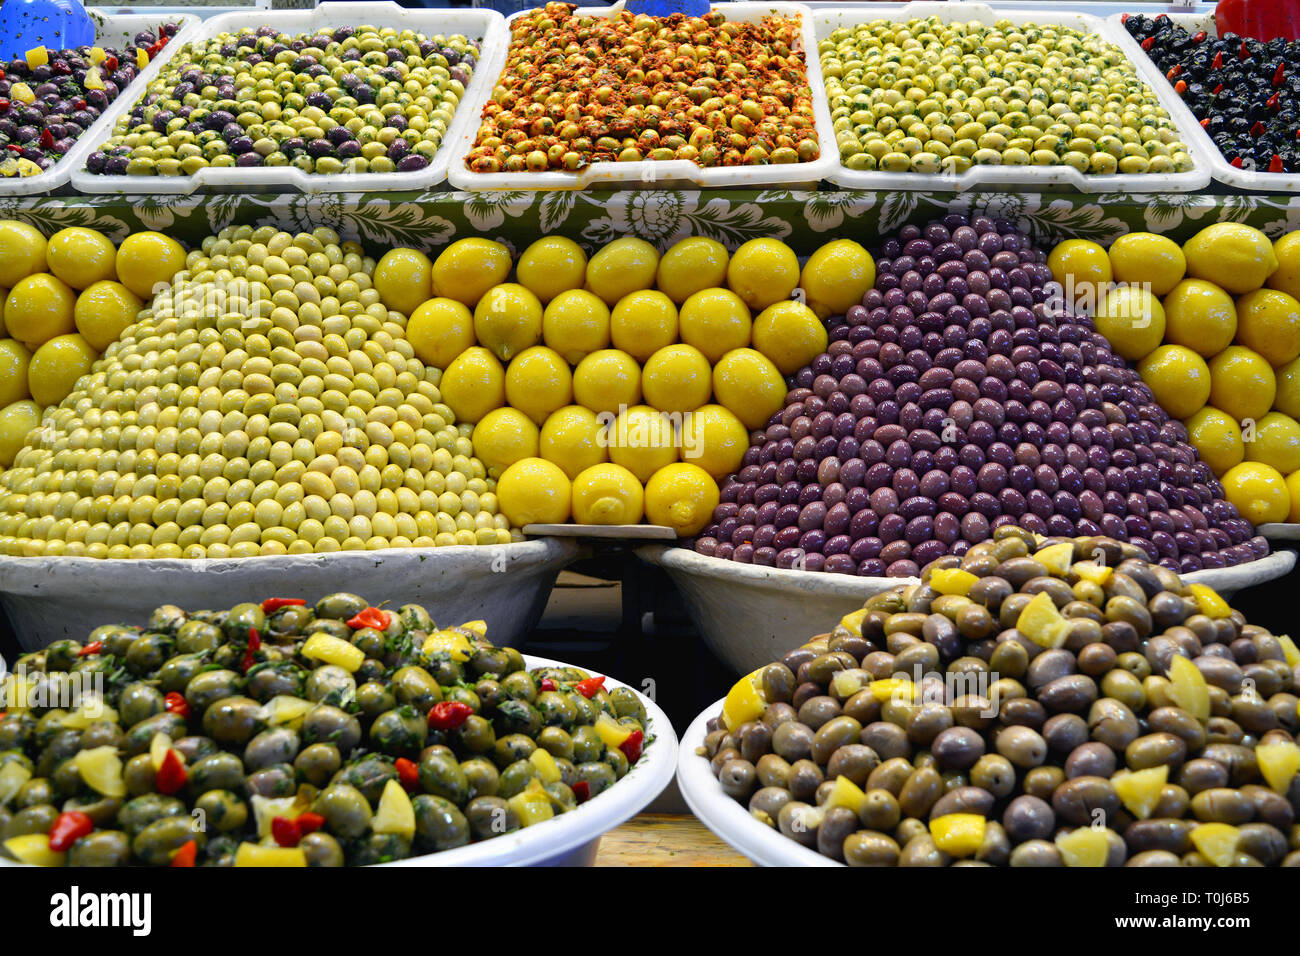 Montecolino Top Deco Fruit Pyramids Stock Photos Fruit Pyramids Stock Images Alamy